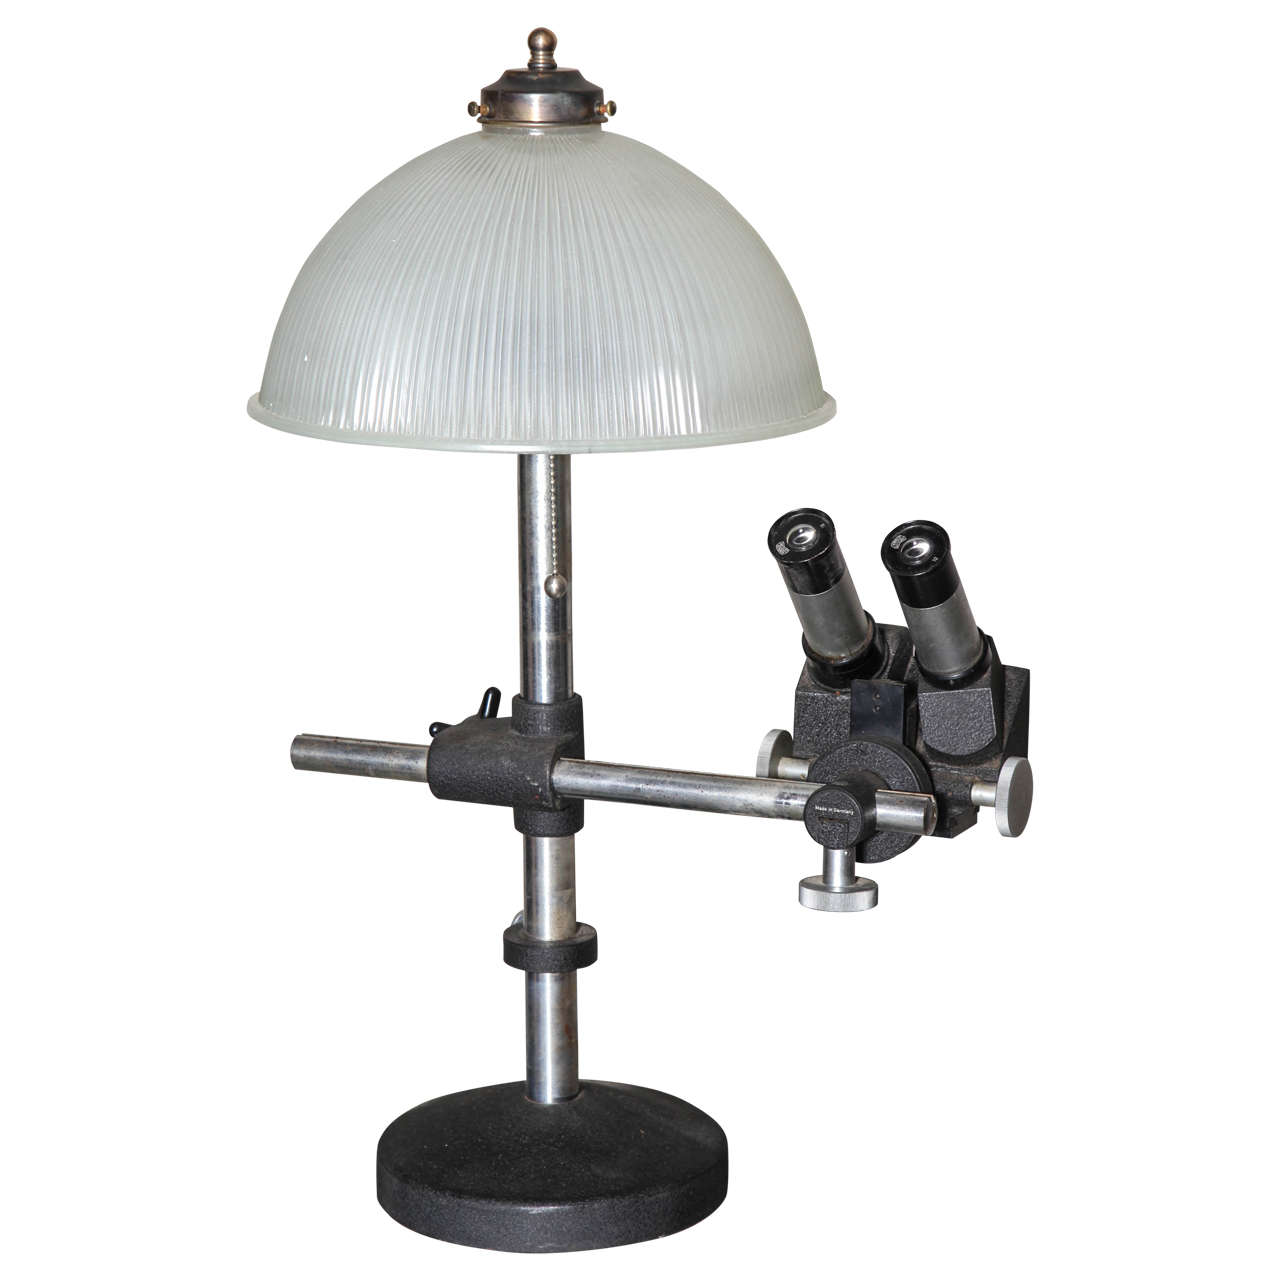 Industrial Lamps For Sale Industrial Table Lamp For Sale At 1stdibs